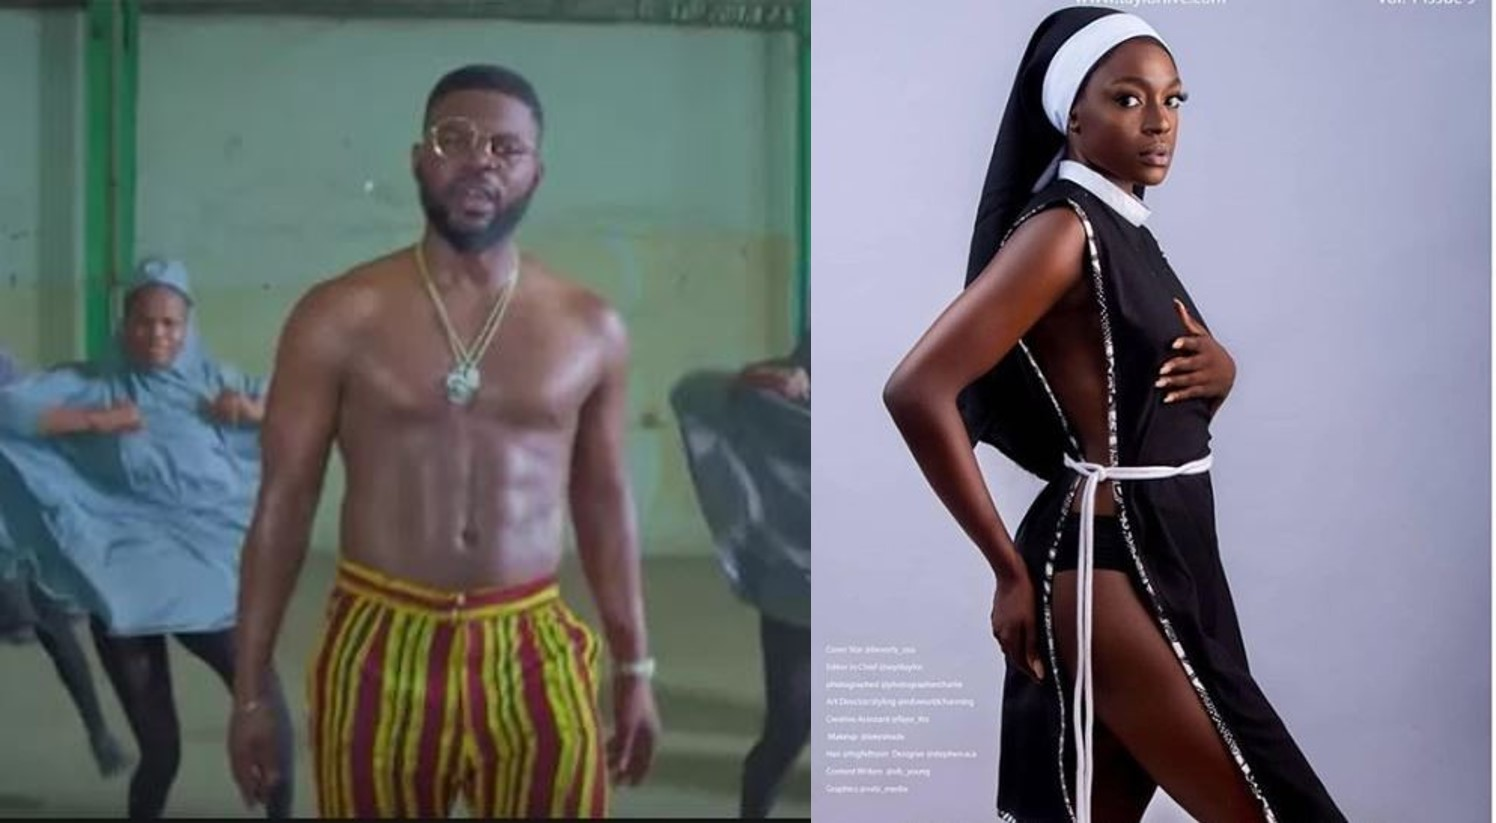 Insulting Religion In The Name of Art: Between Beverly Osu and Falz – Rasheed Abubakar writes